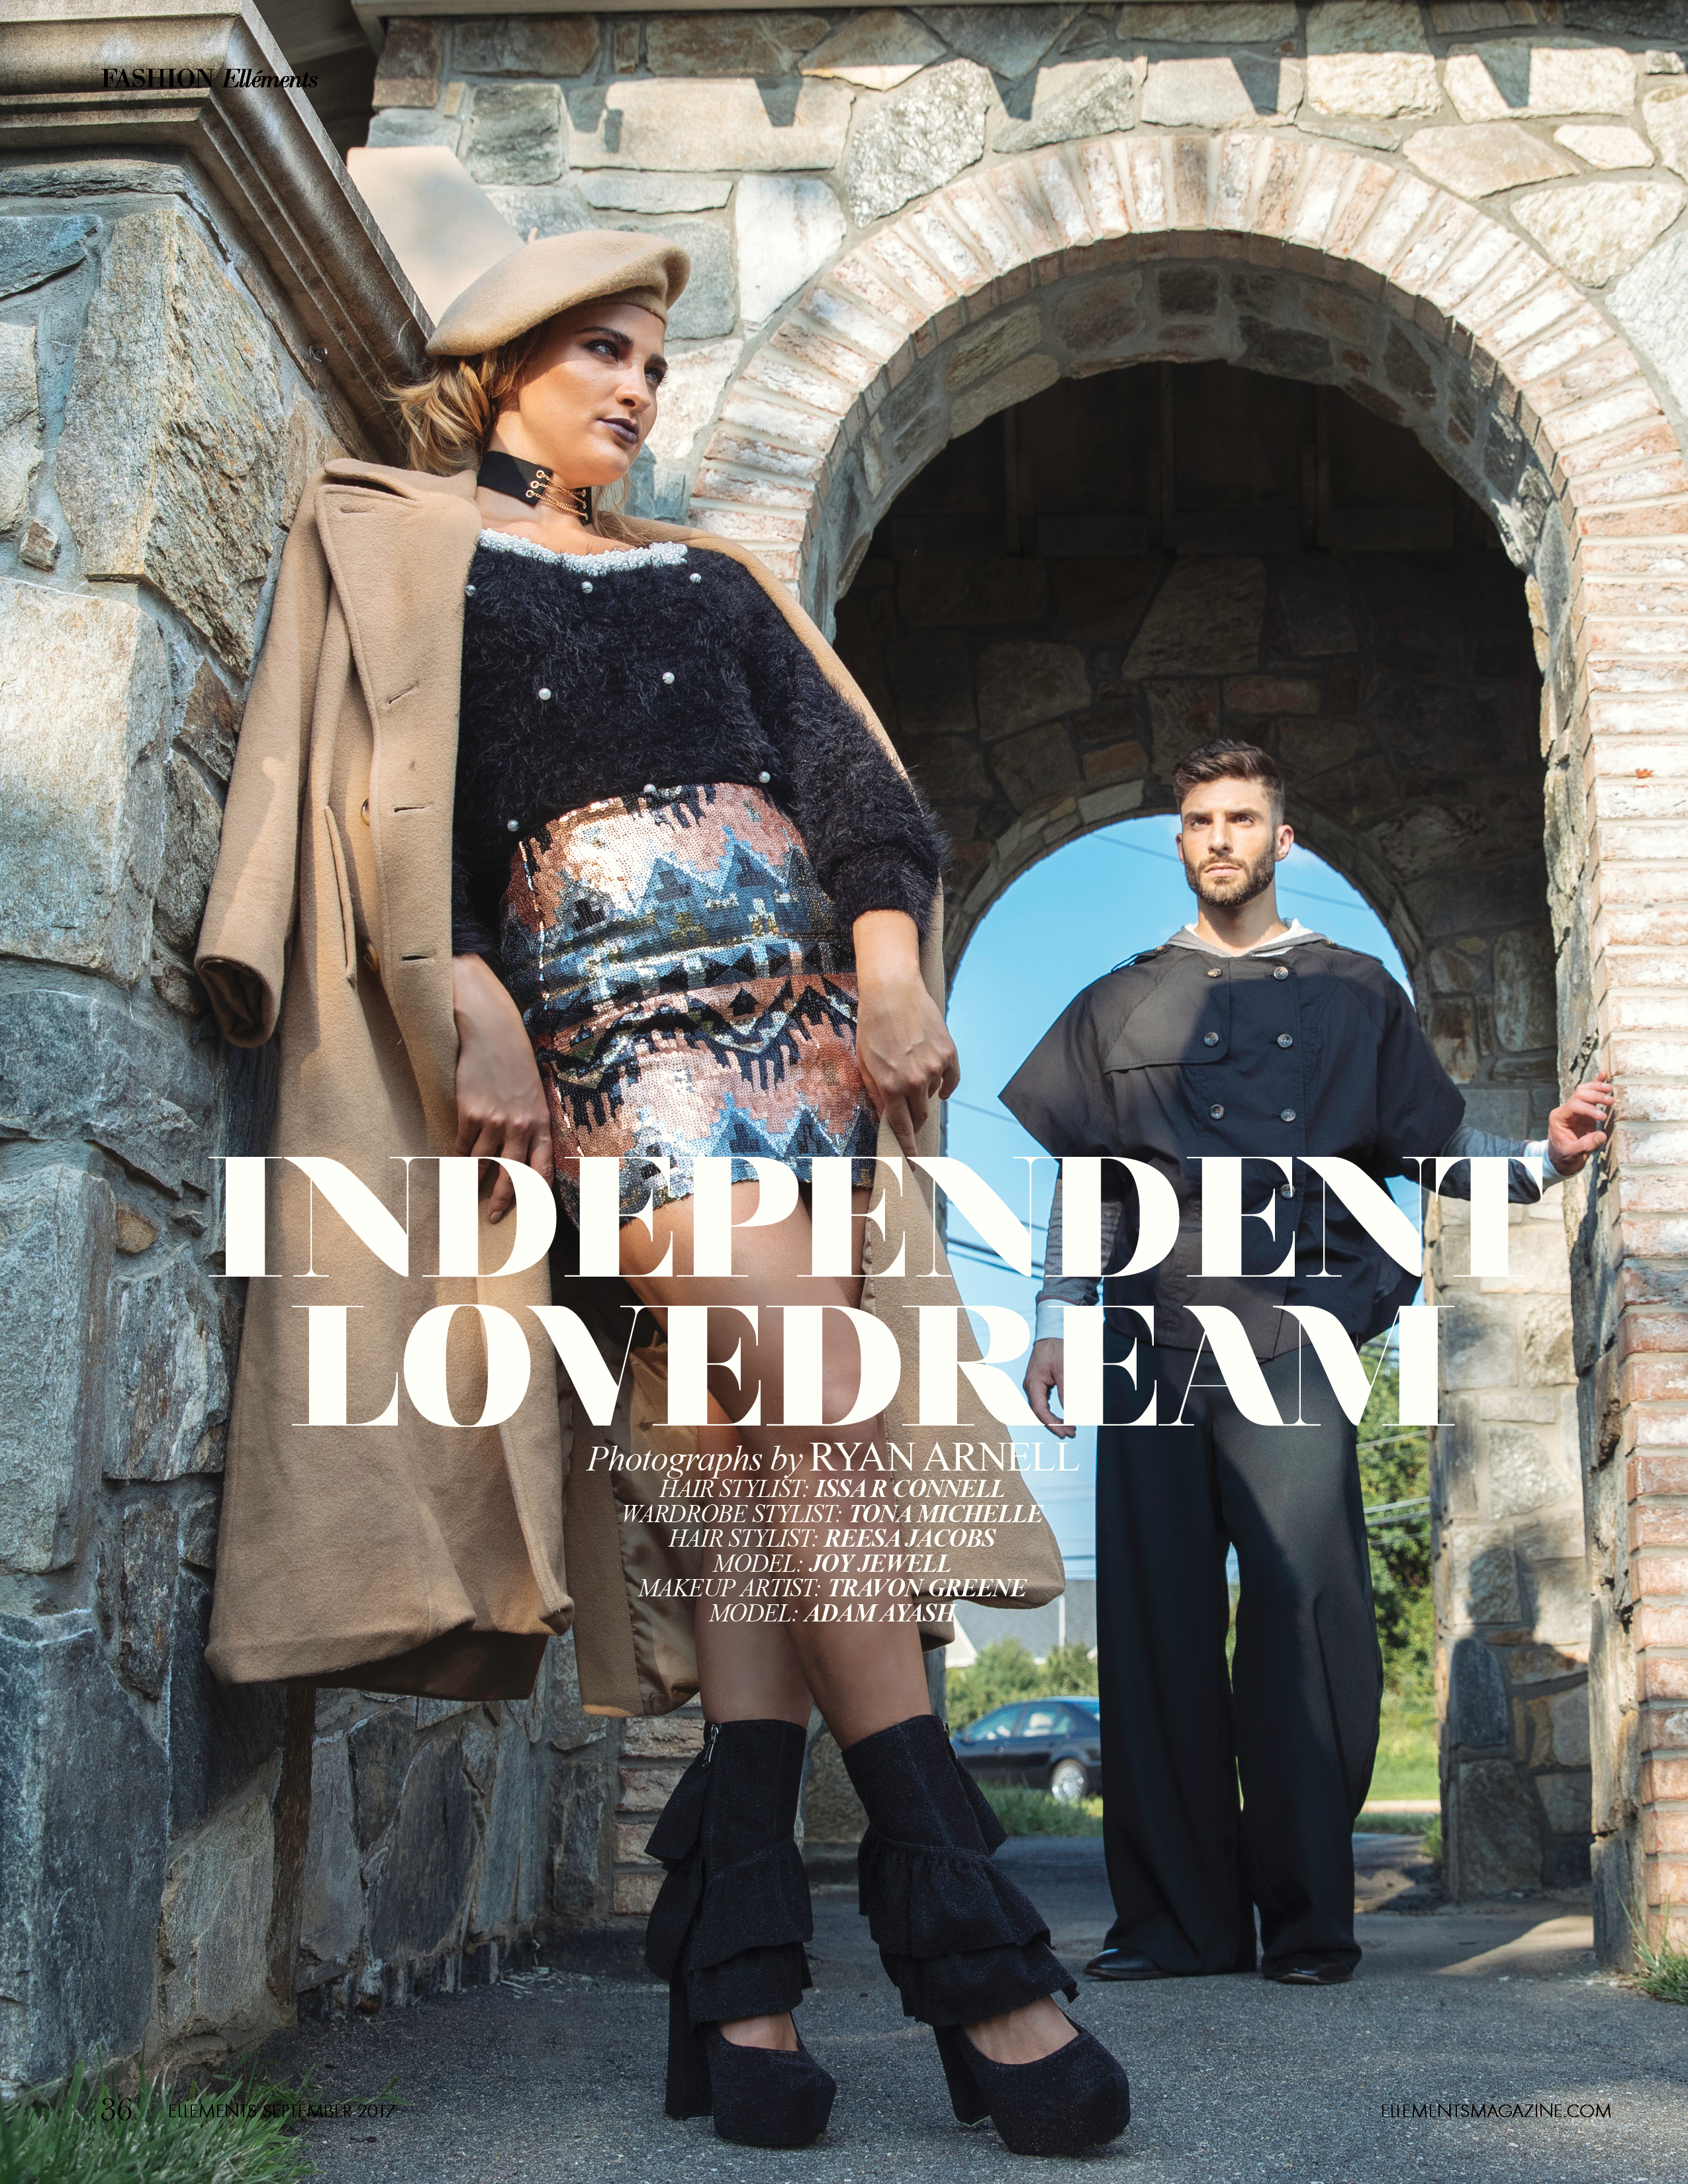 INDEPENDENT LOVEDREAM